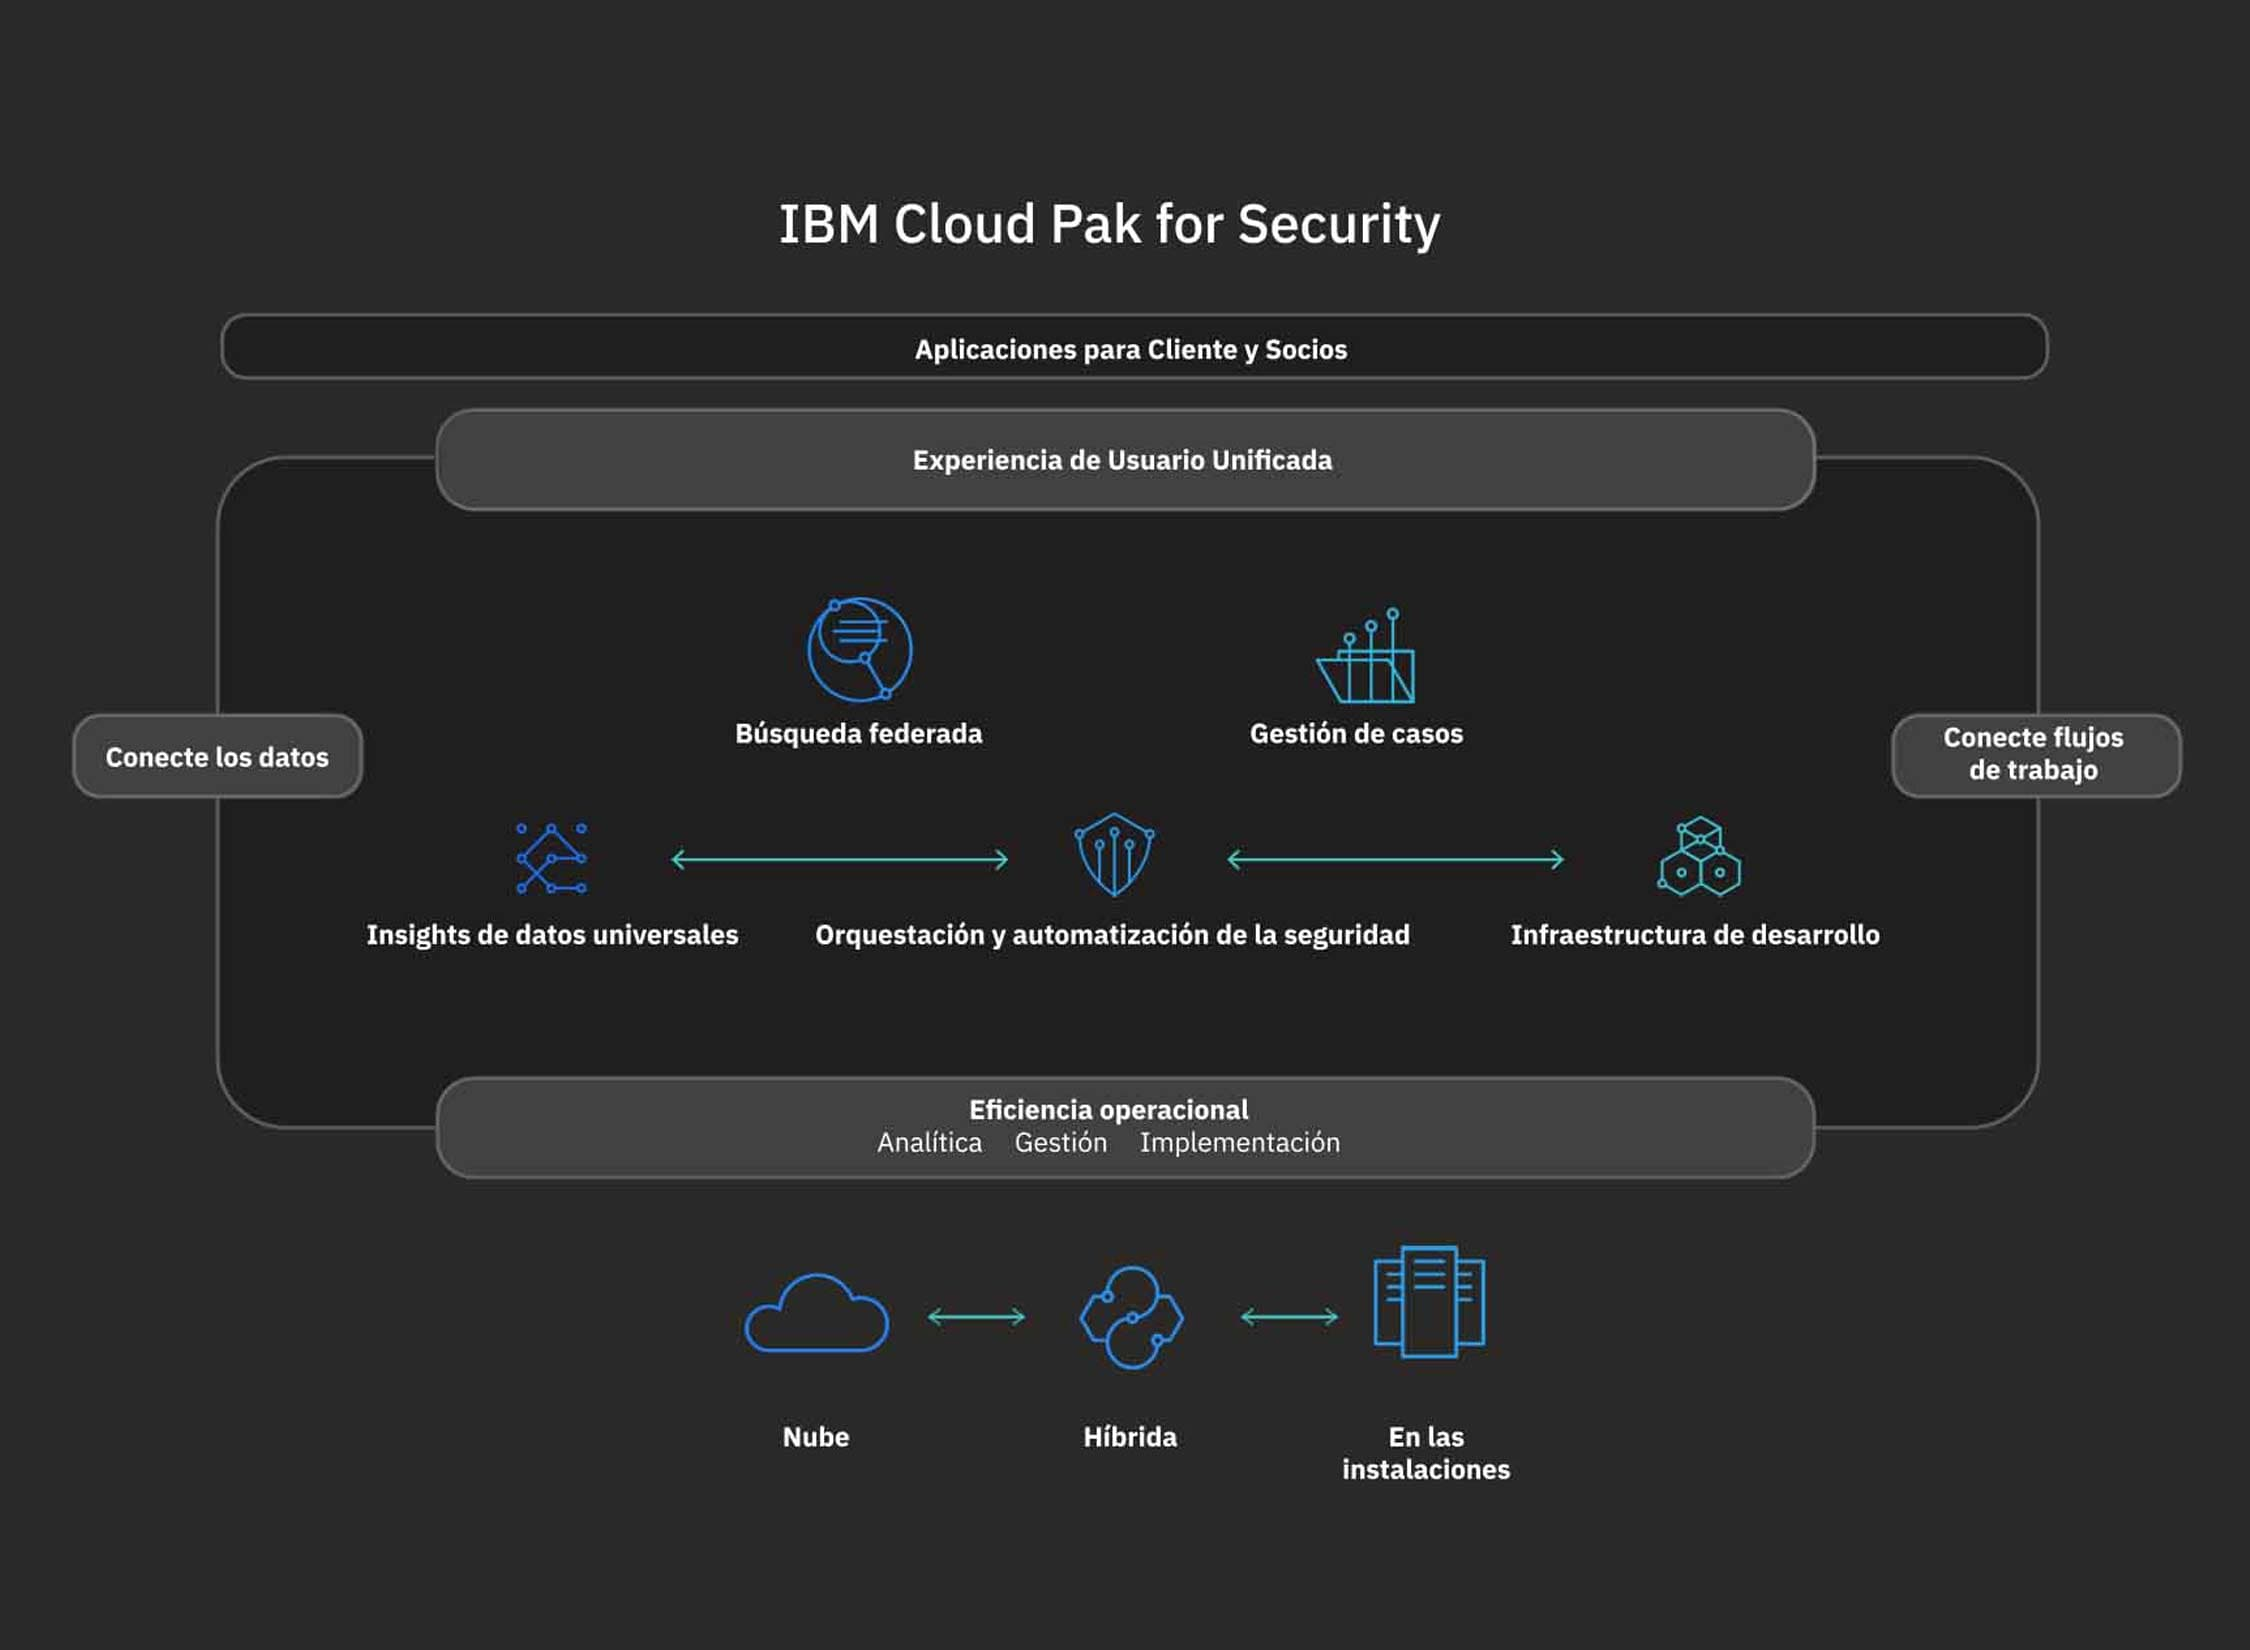 Diagrama de IBM Cloud Pak for Security